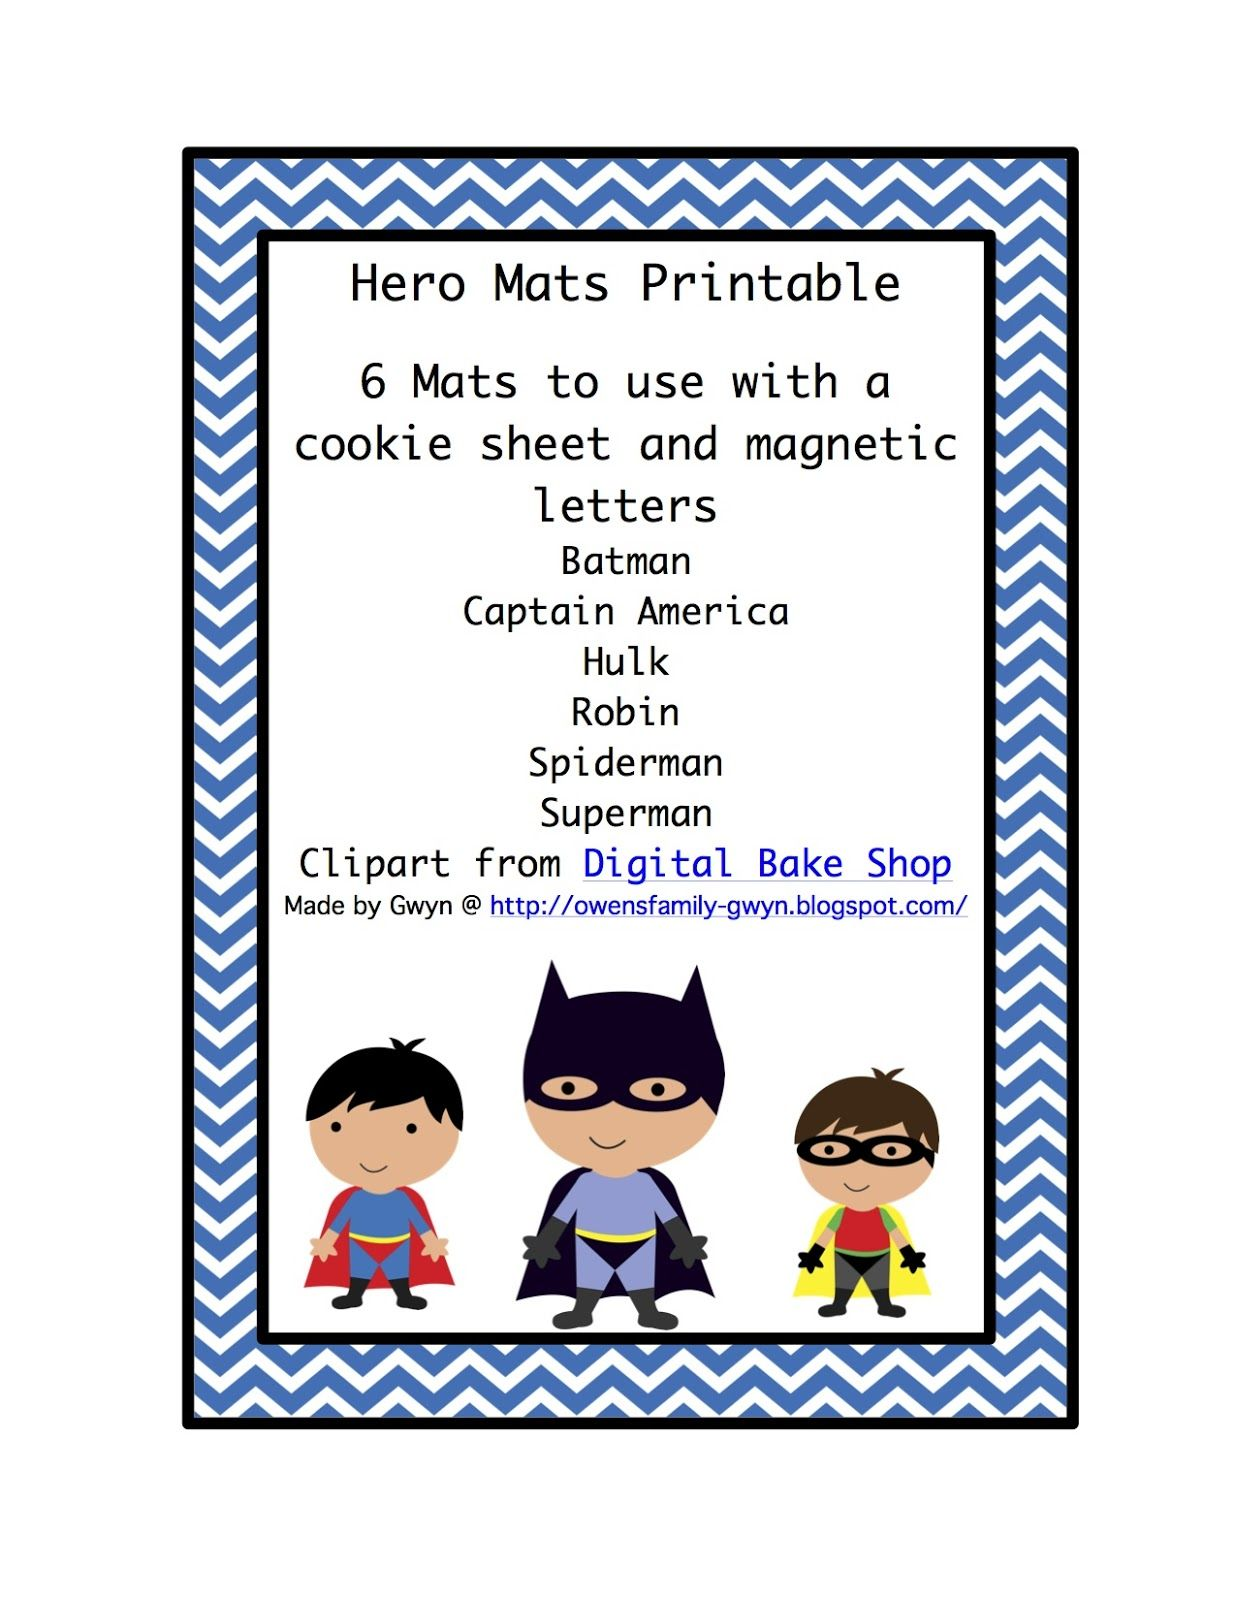 Super Hero Mats To Use With Cookie Sheet And Magnetic